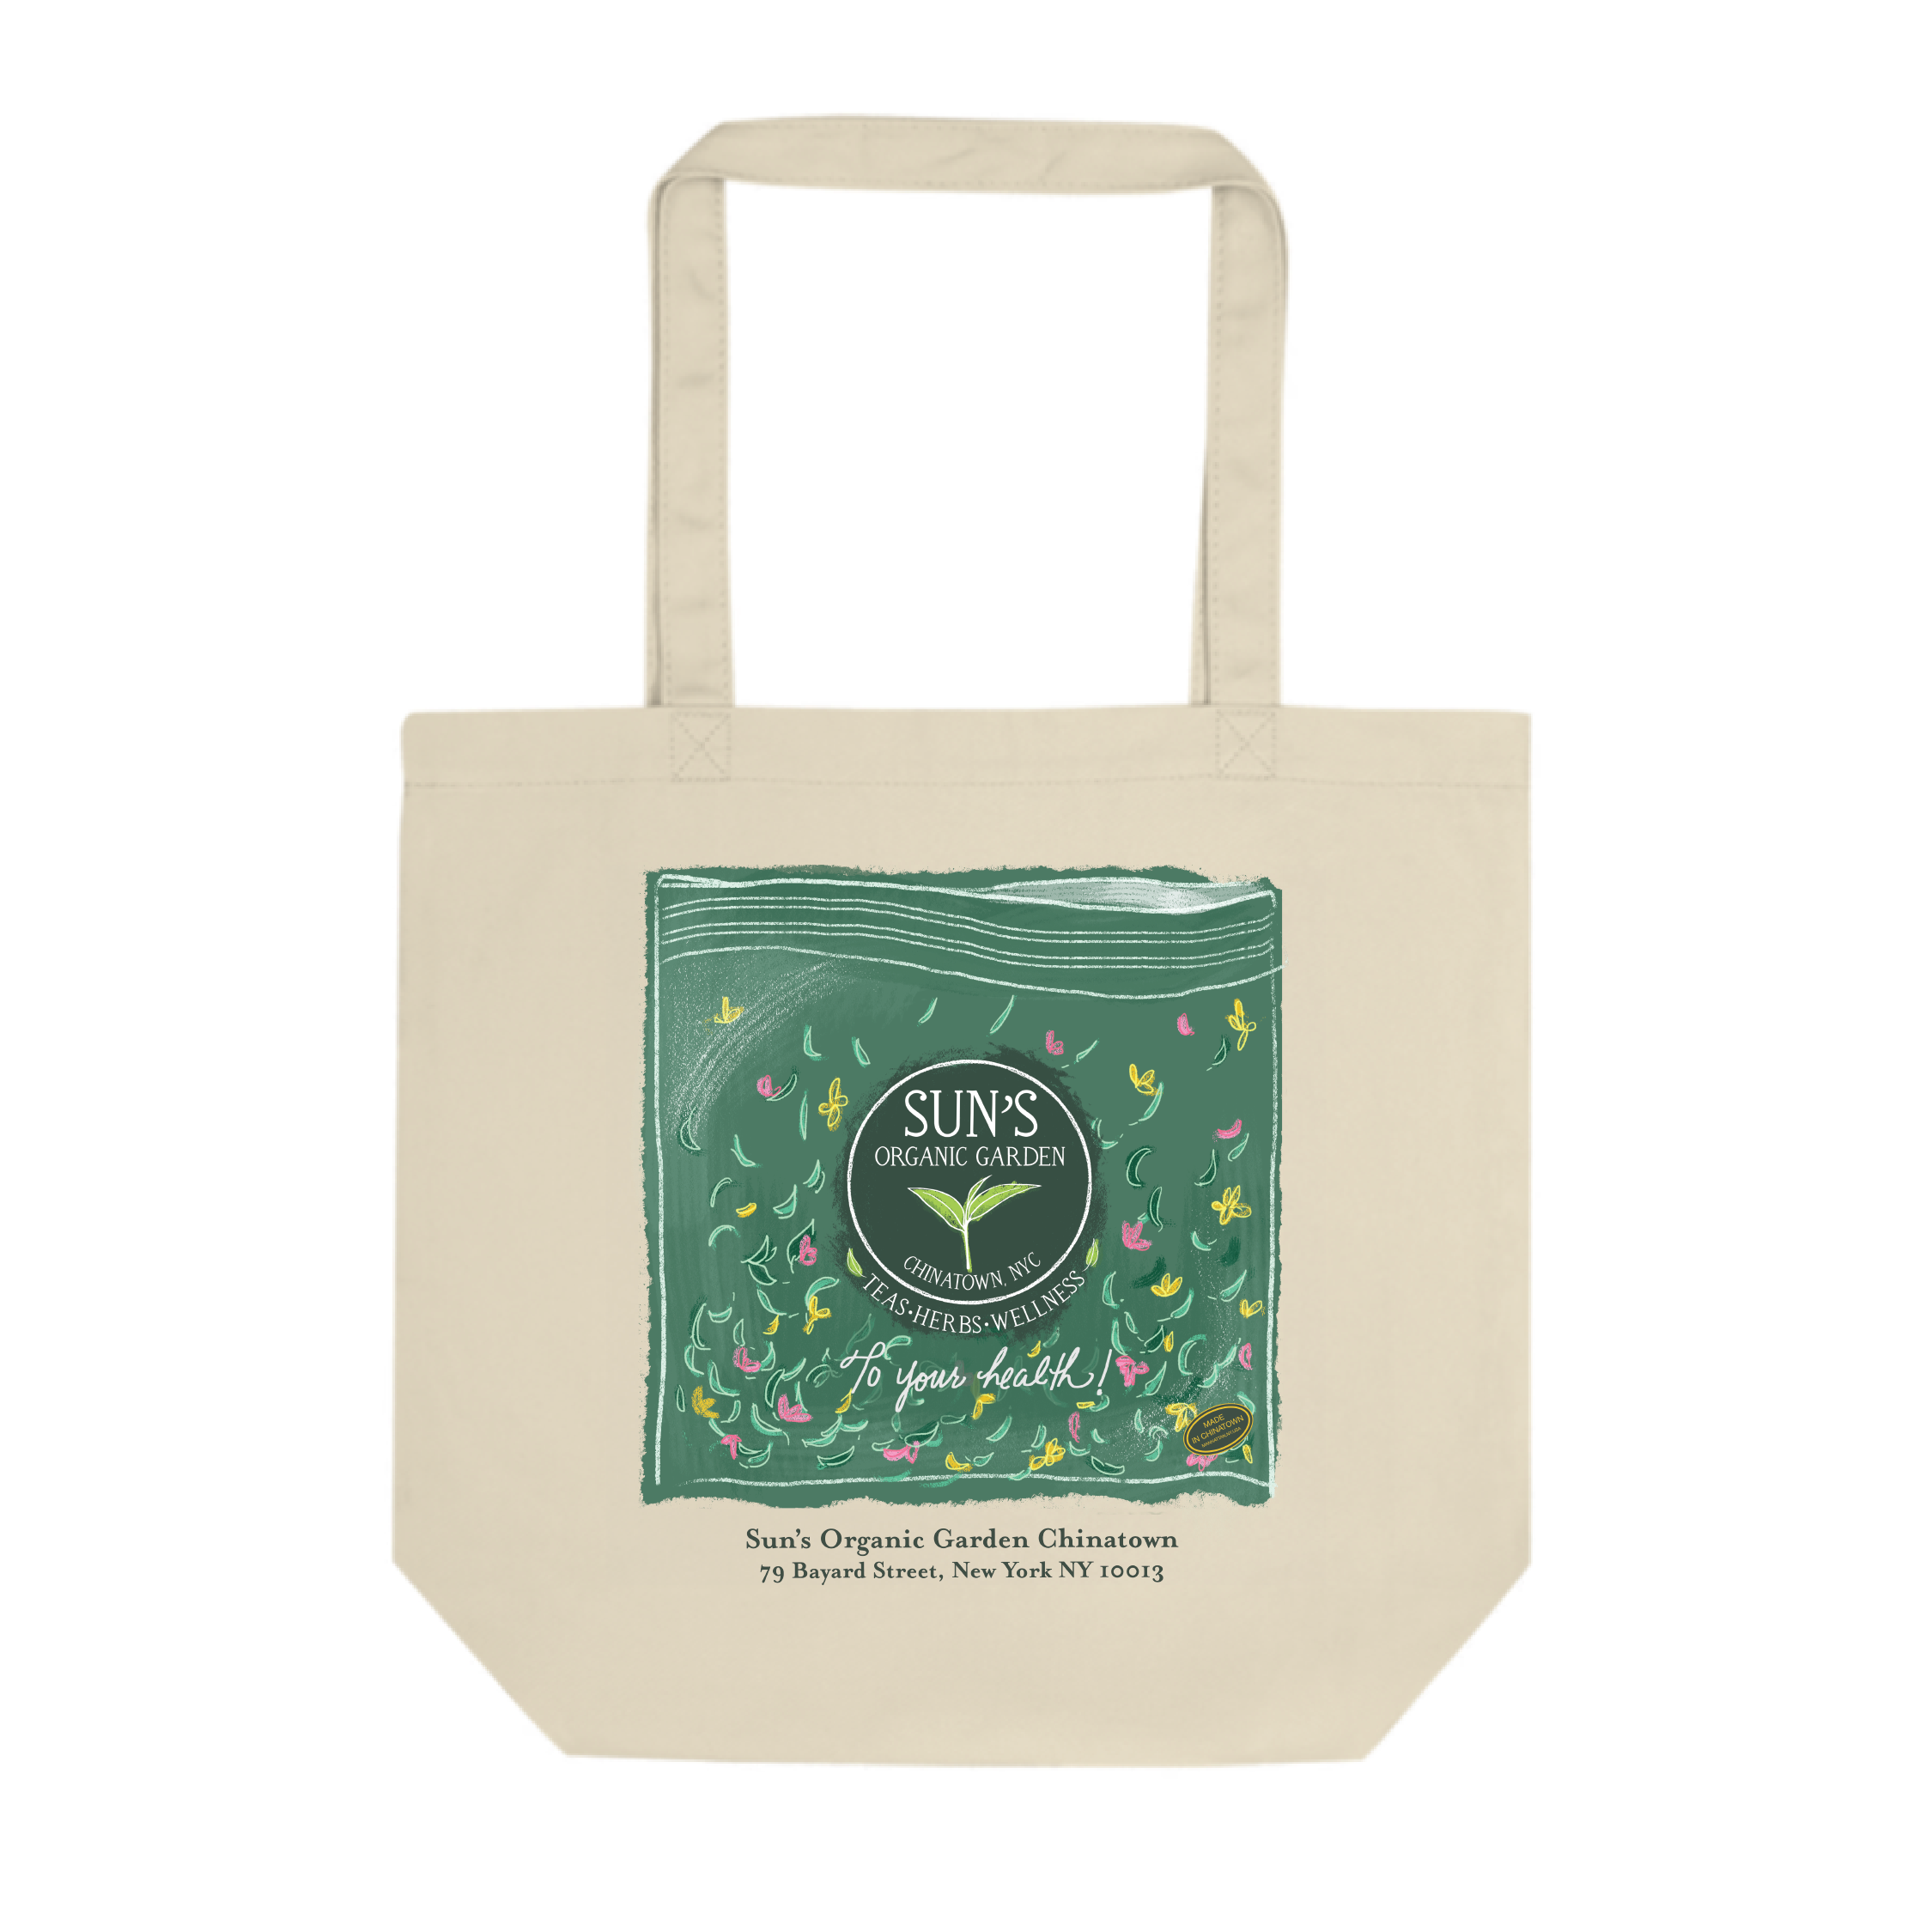 Sun's Organic Garden x Made in Chinatown Tote